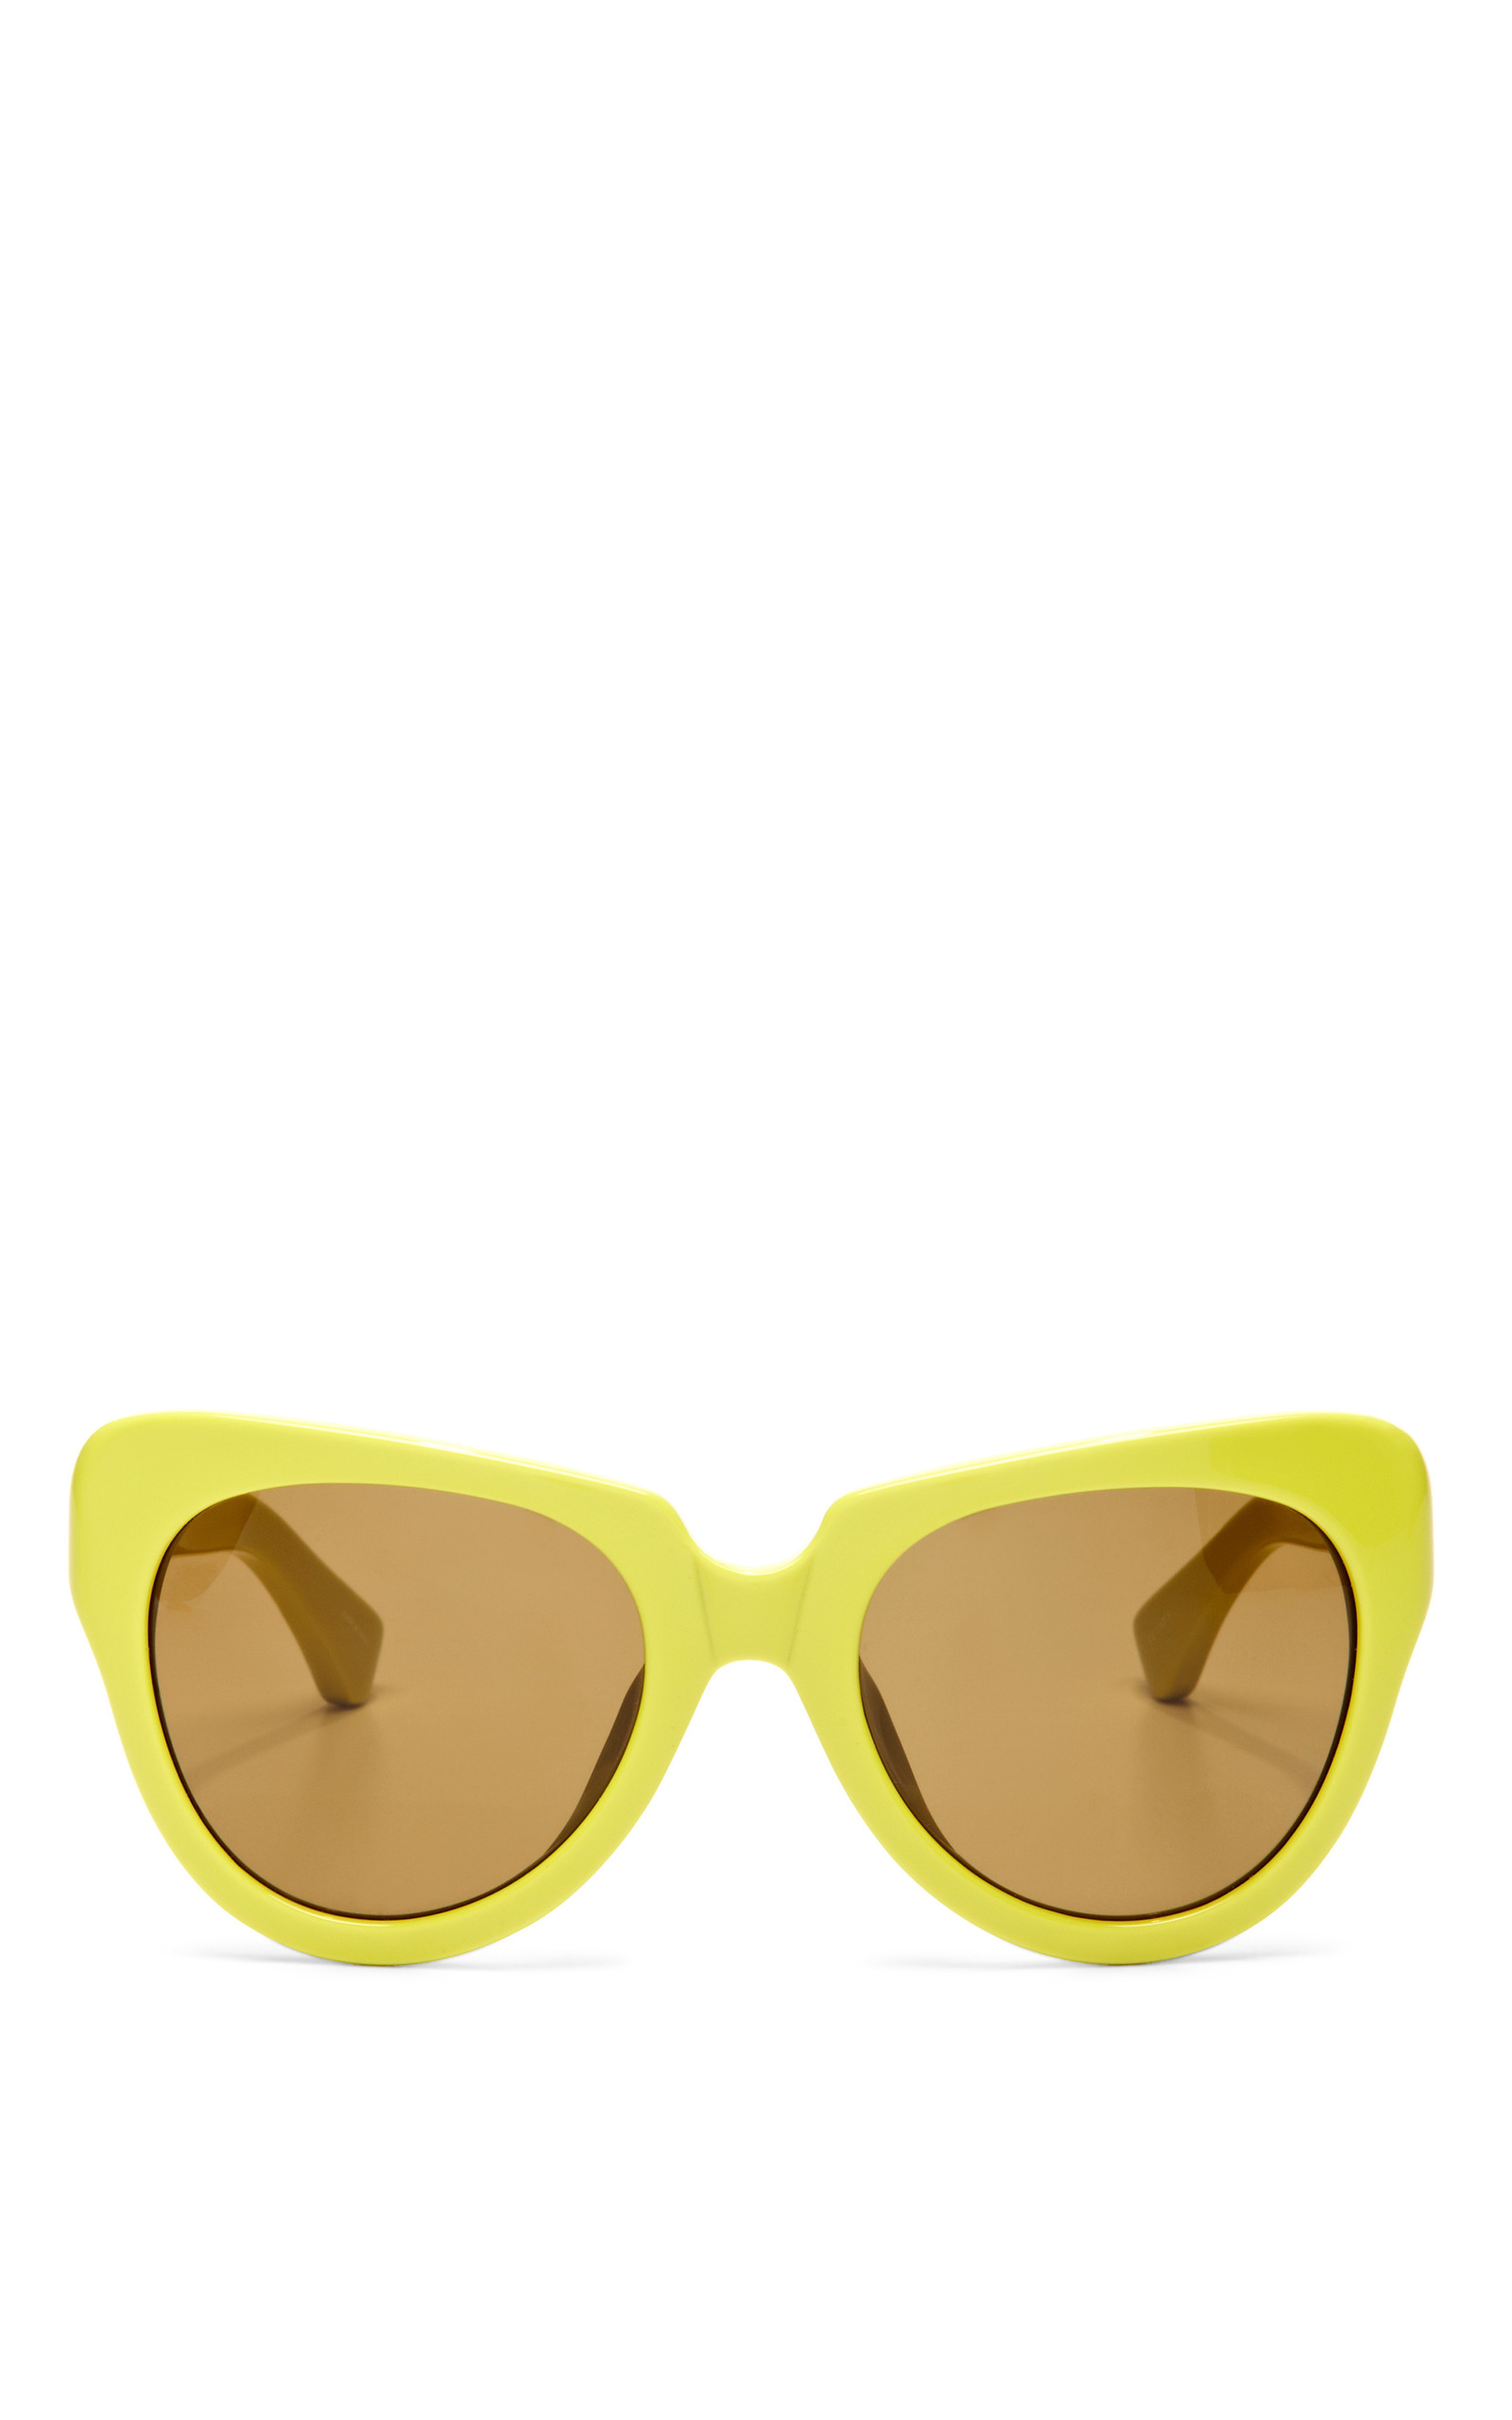 dc3acaccd4c0 For Dries Van Noten Cat-Eye Acetate Sunglasses by Linda Farrow ...